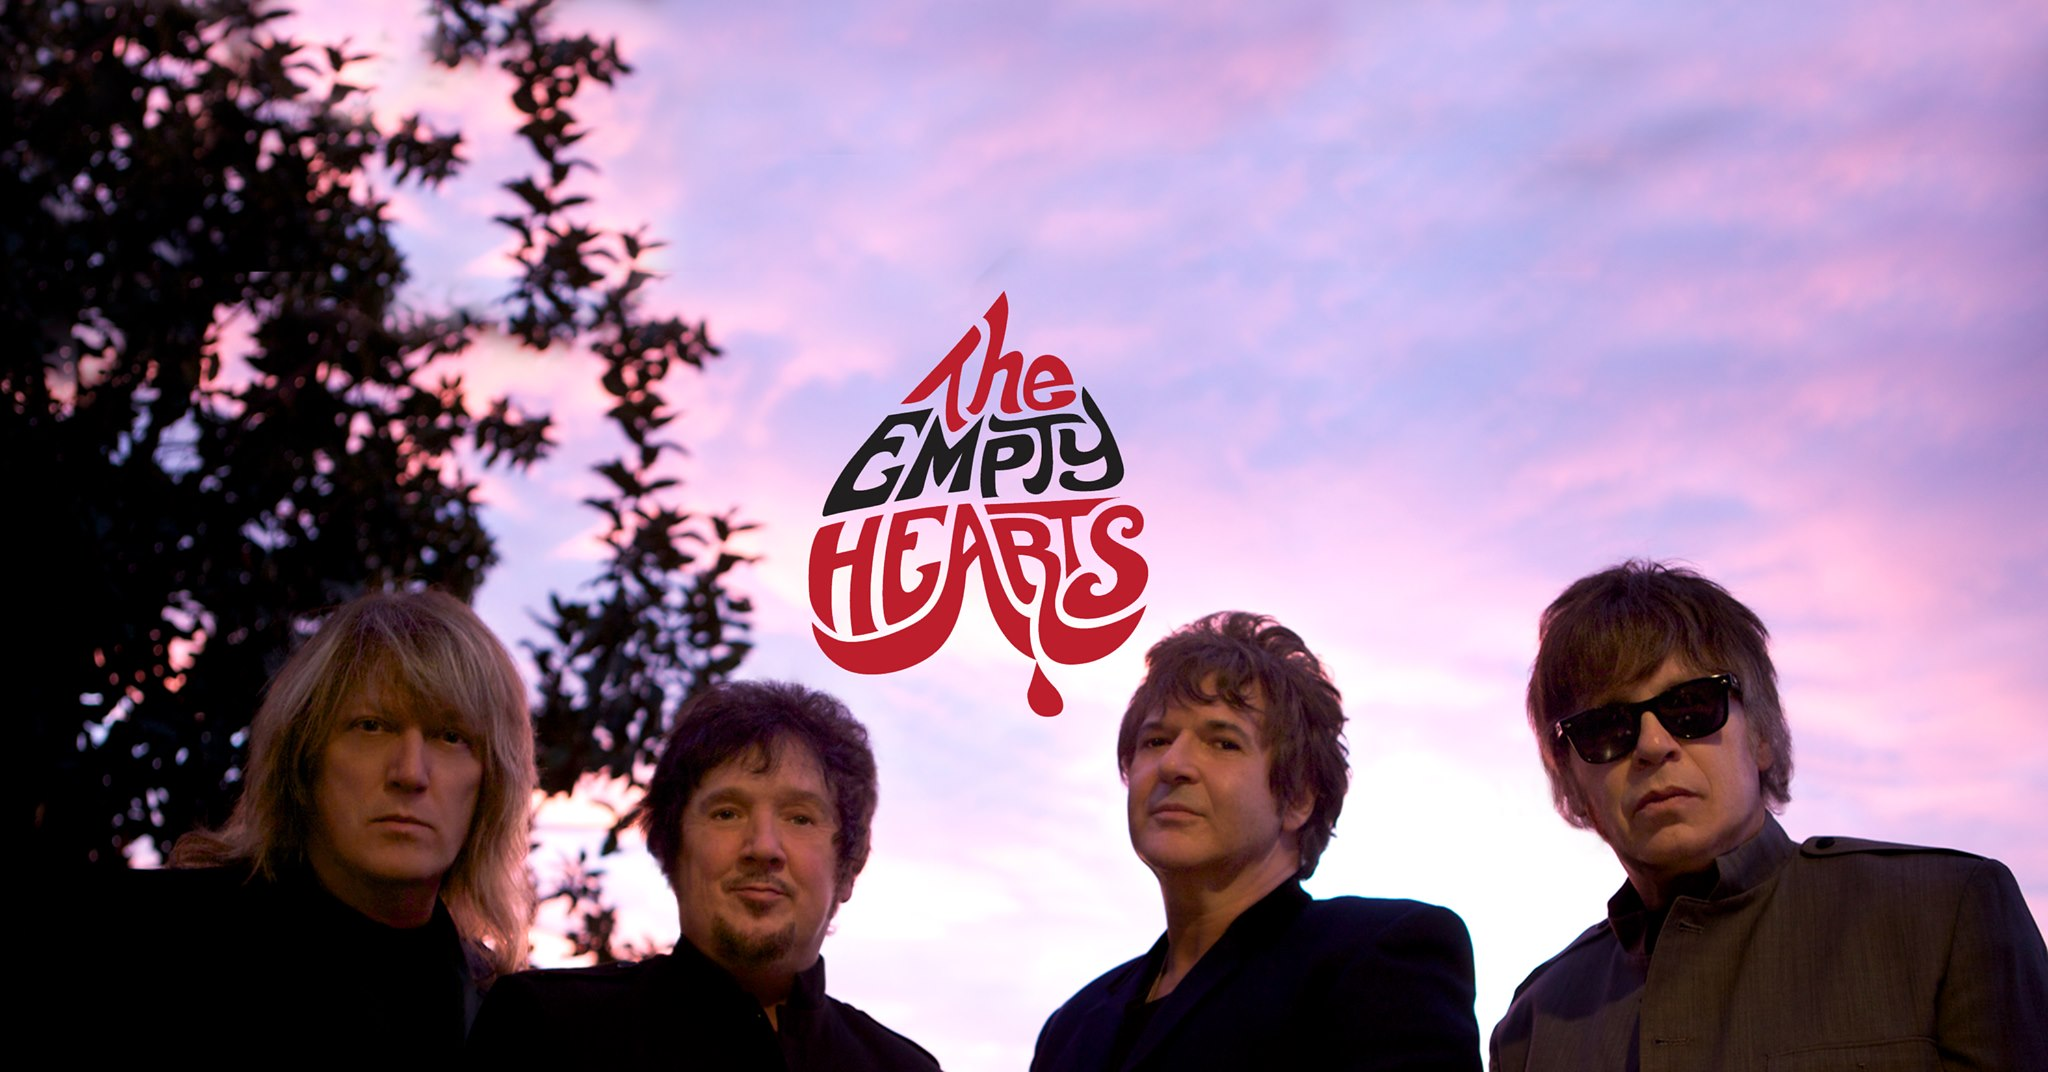 The Empty Hearts Band